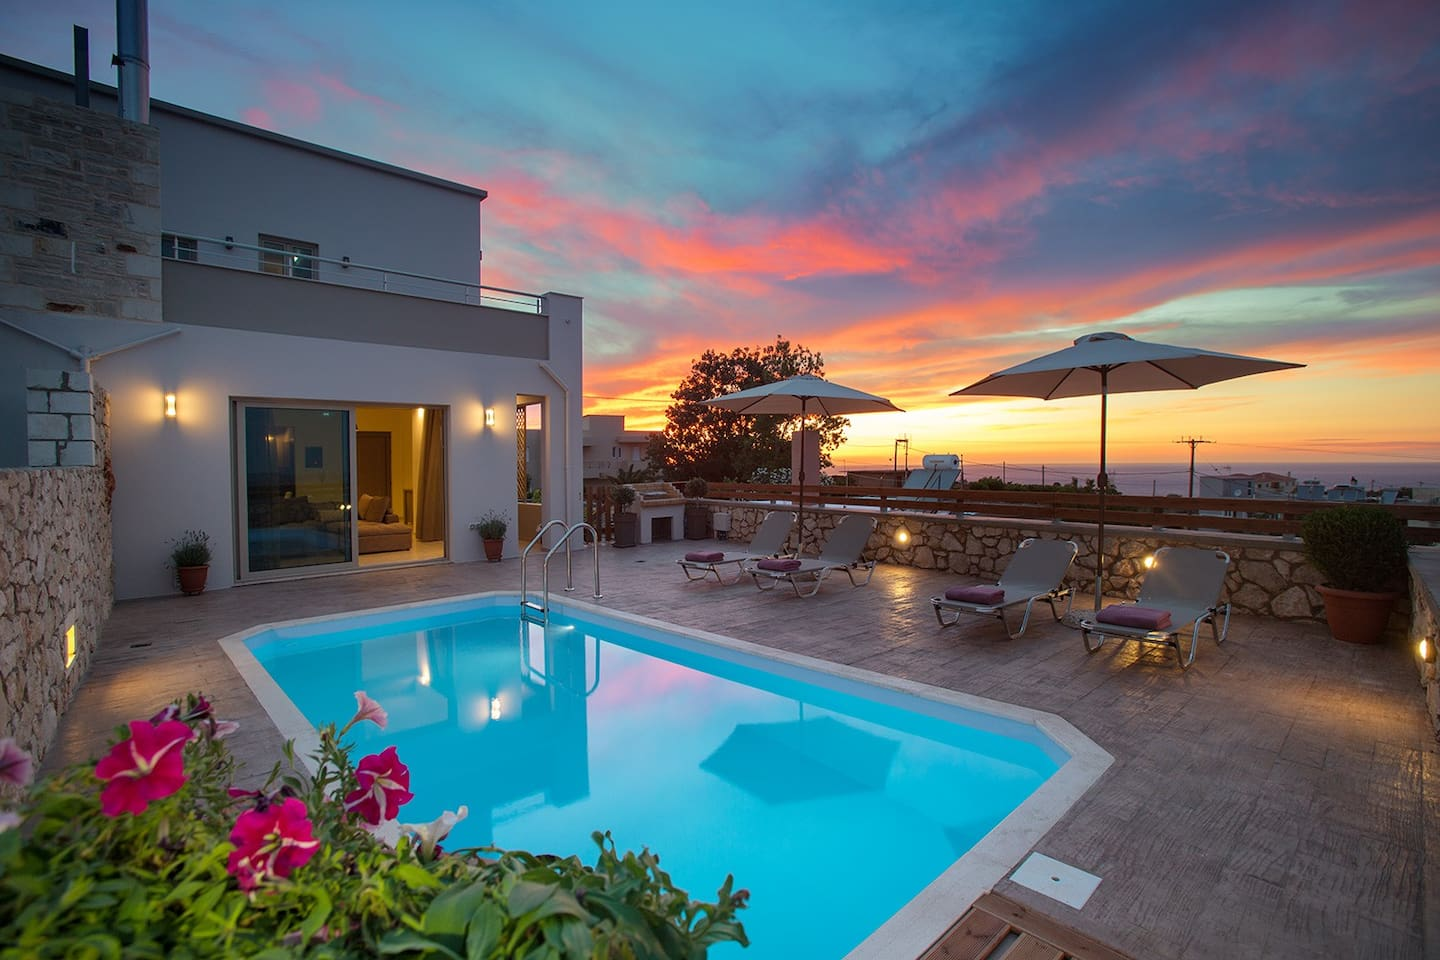 Top 20 Rethimno Villa and Bungalow Rentals - Airbnb Rethimno ...